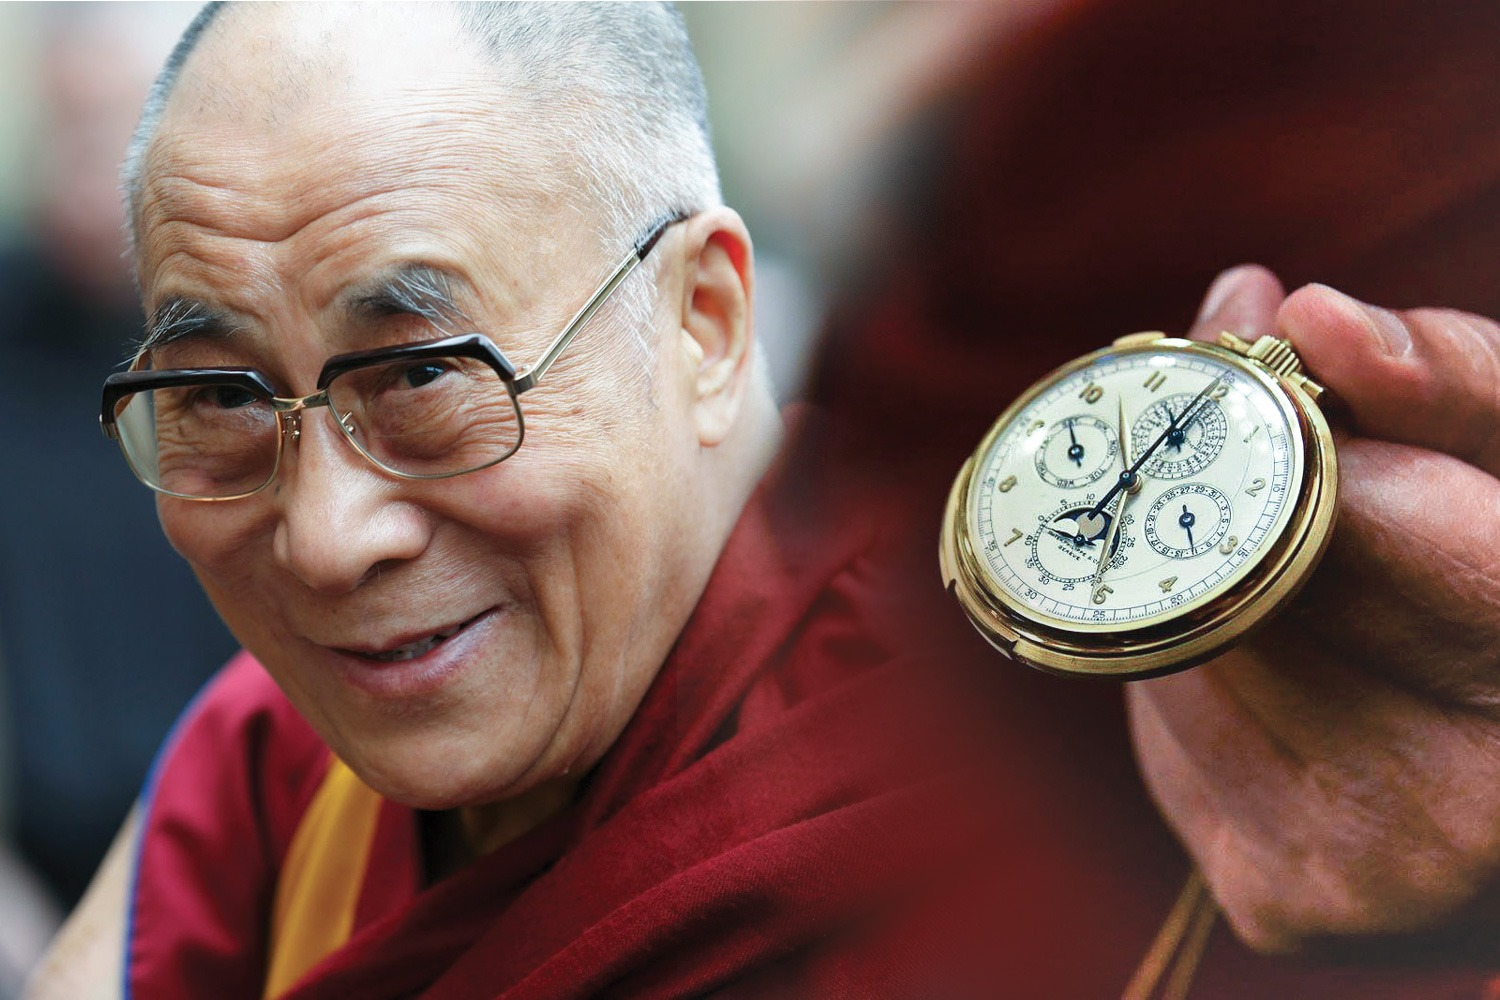 A humble crown: The Dalai Lama's passion for watches